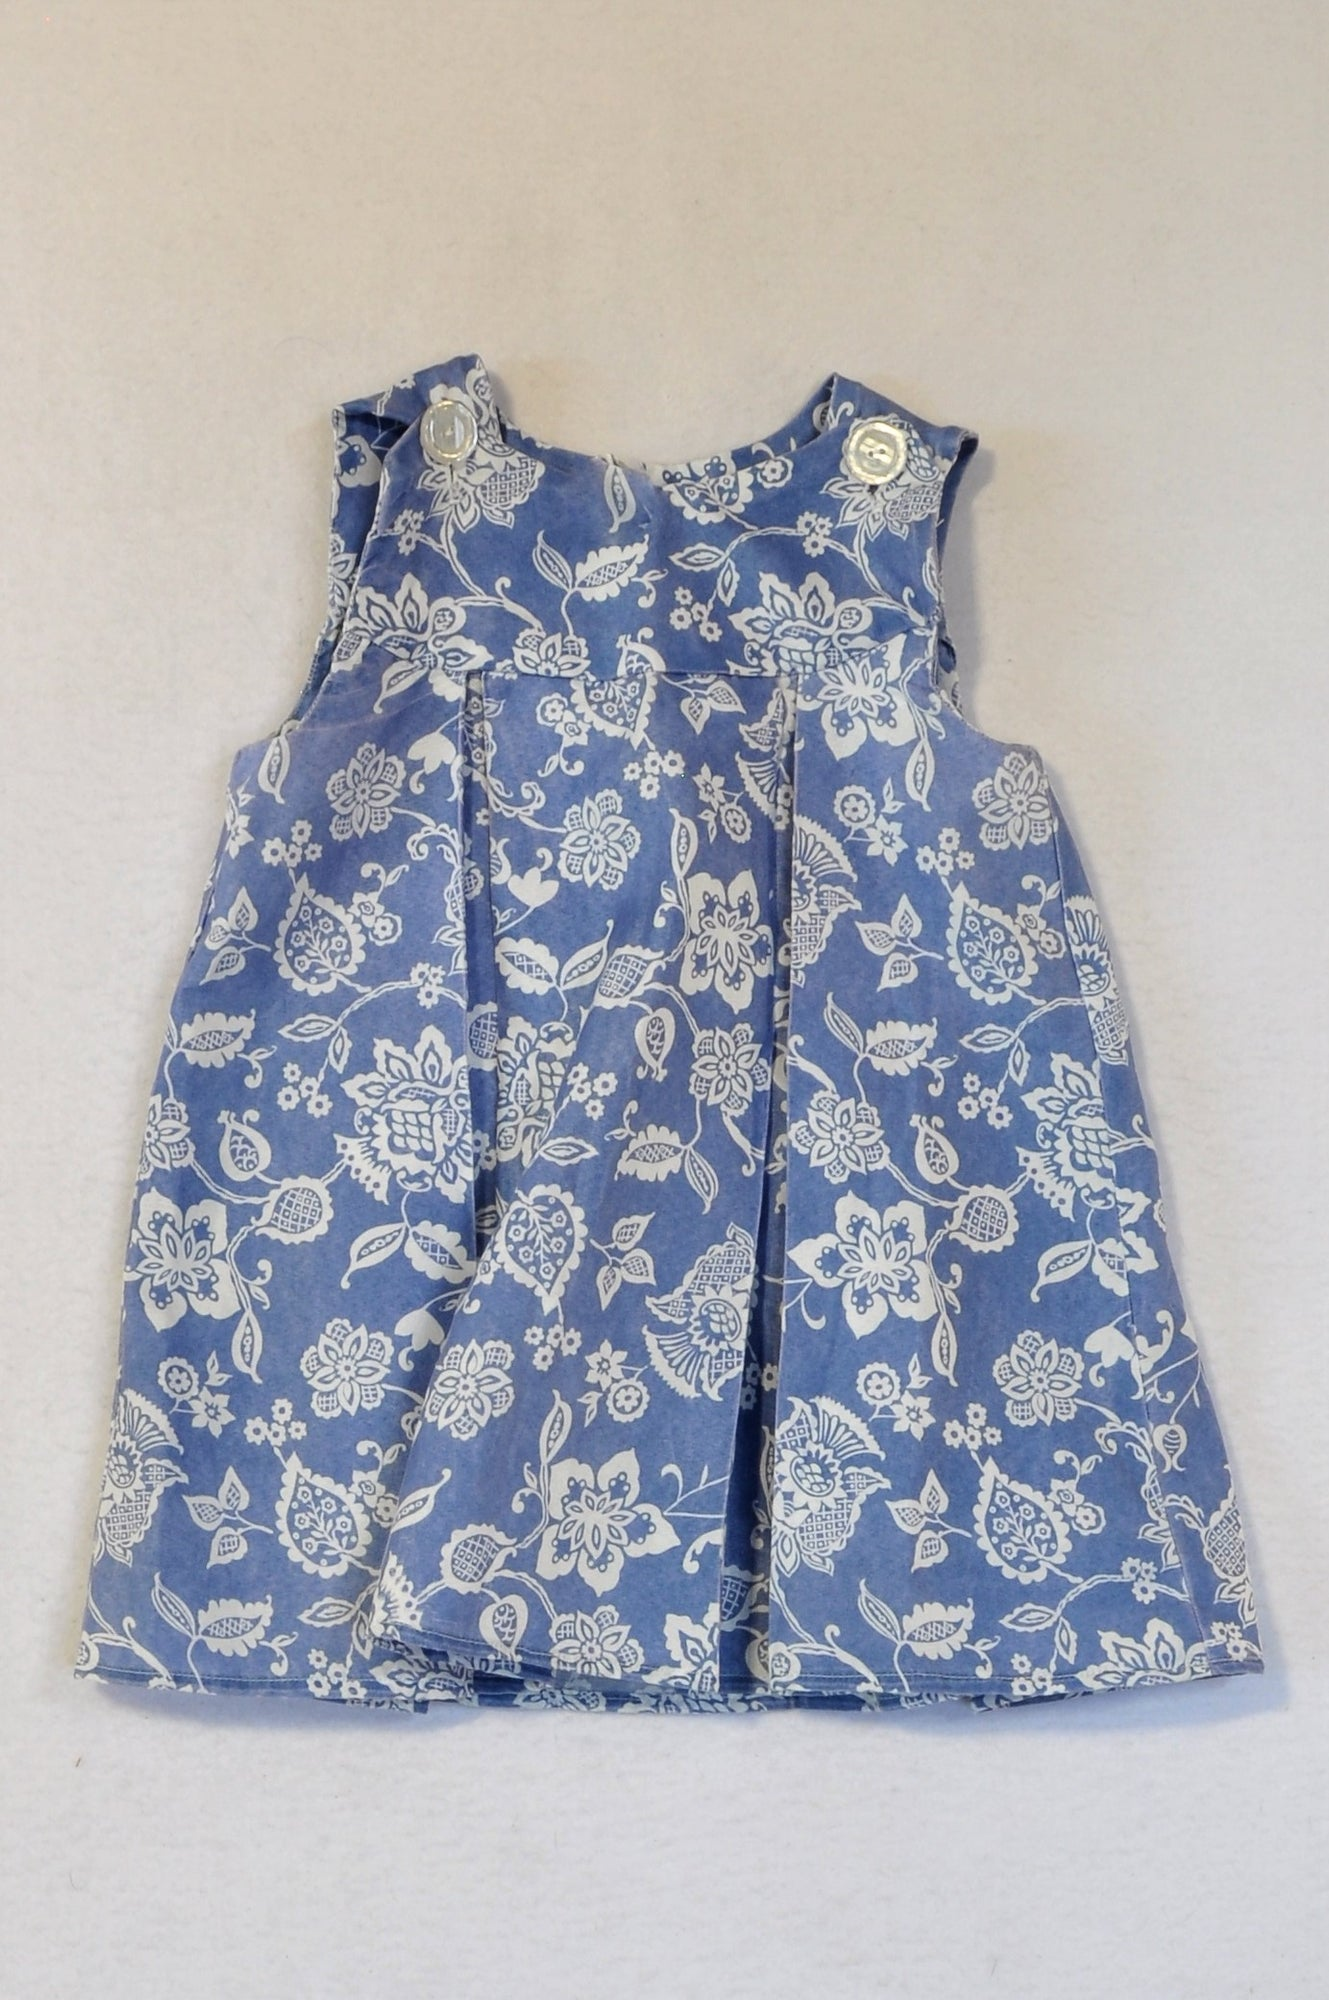 Unbranded Chambray & White Floral Shift Dress Girls 2-3 years